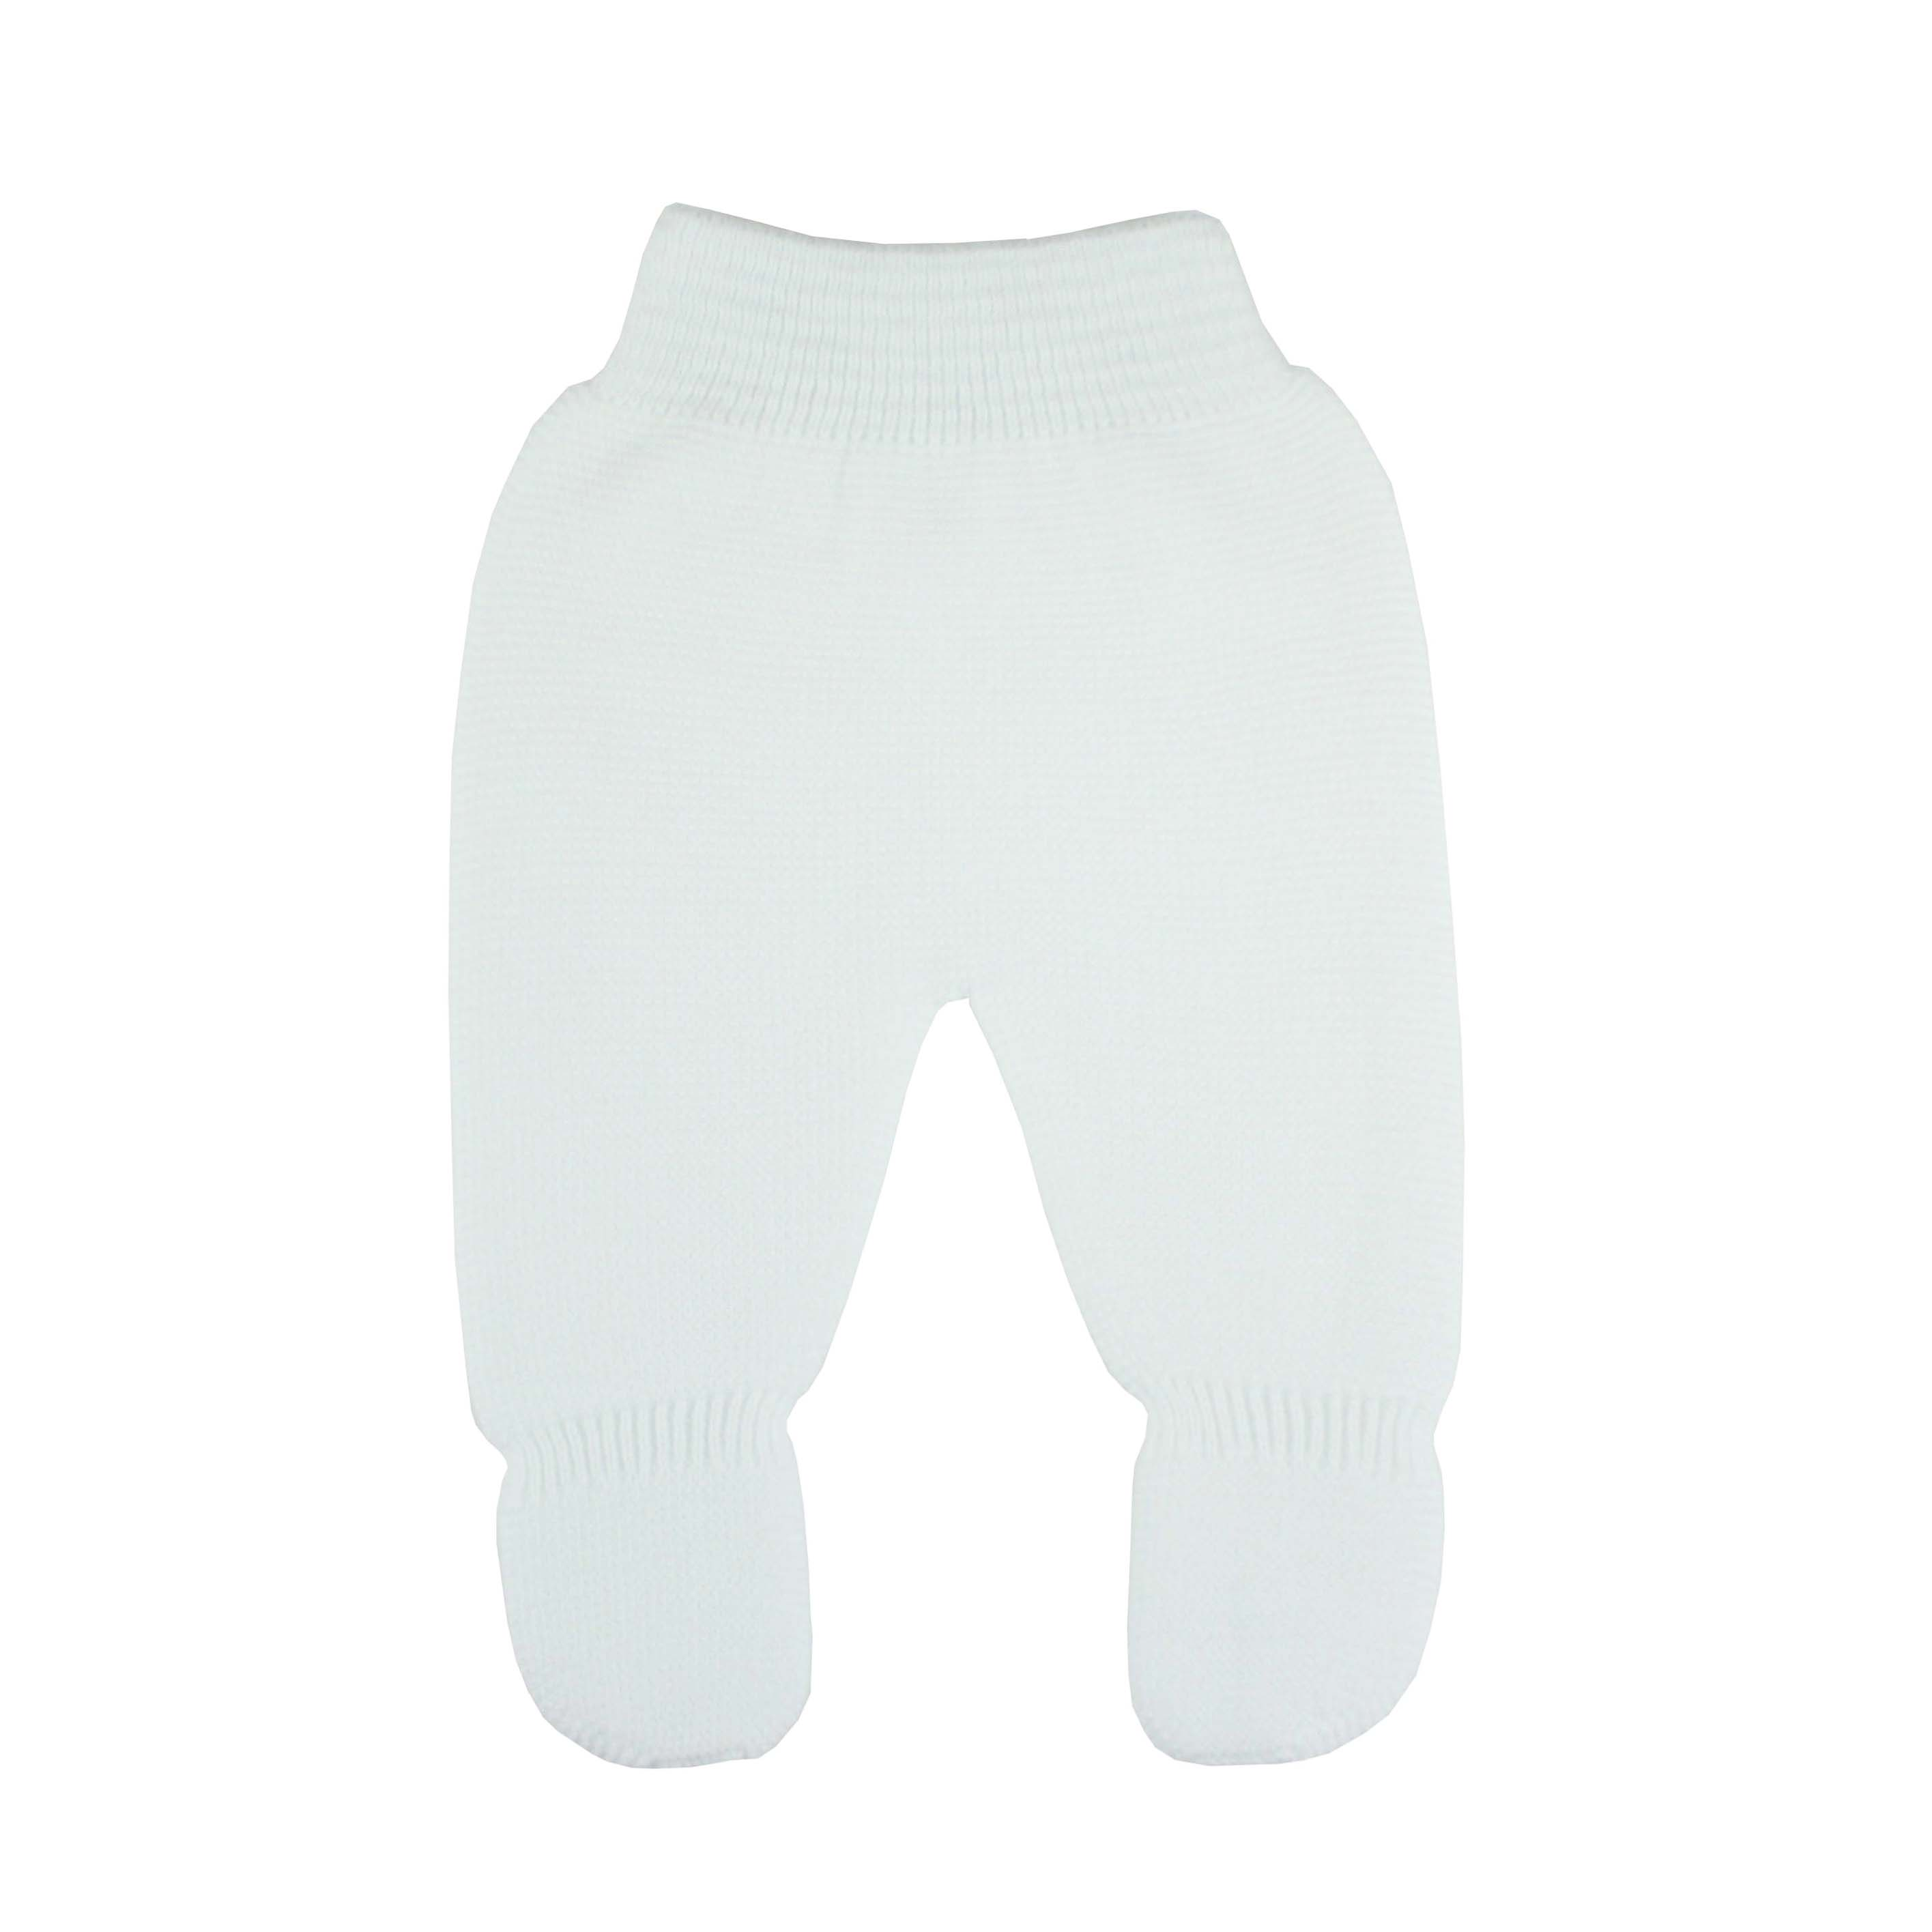 42d08d383a6c1 White Thick knit leggings baby.